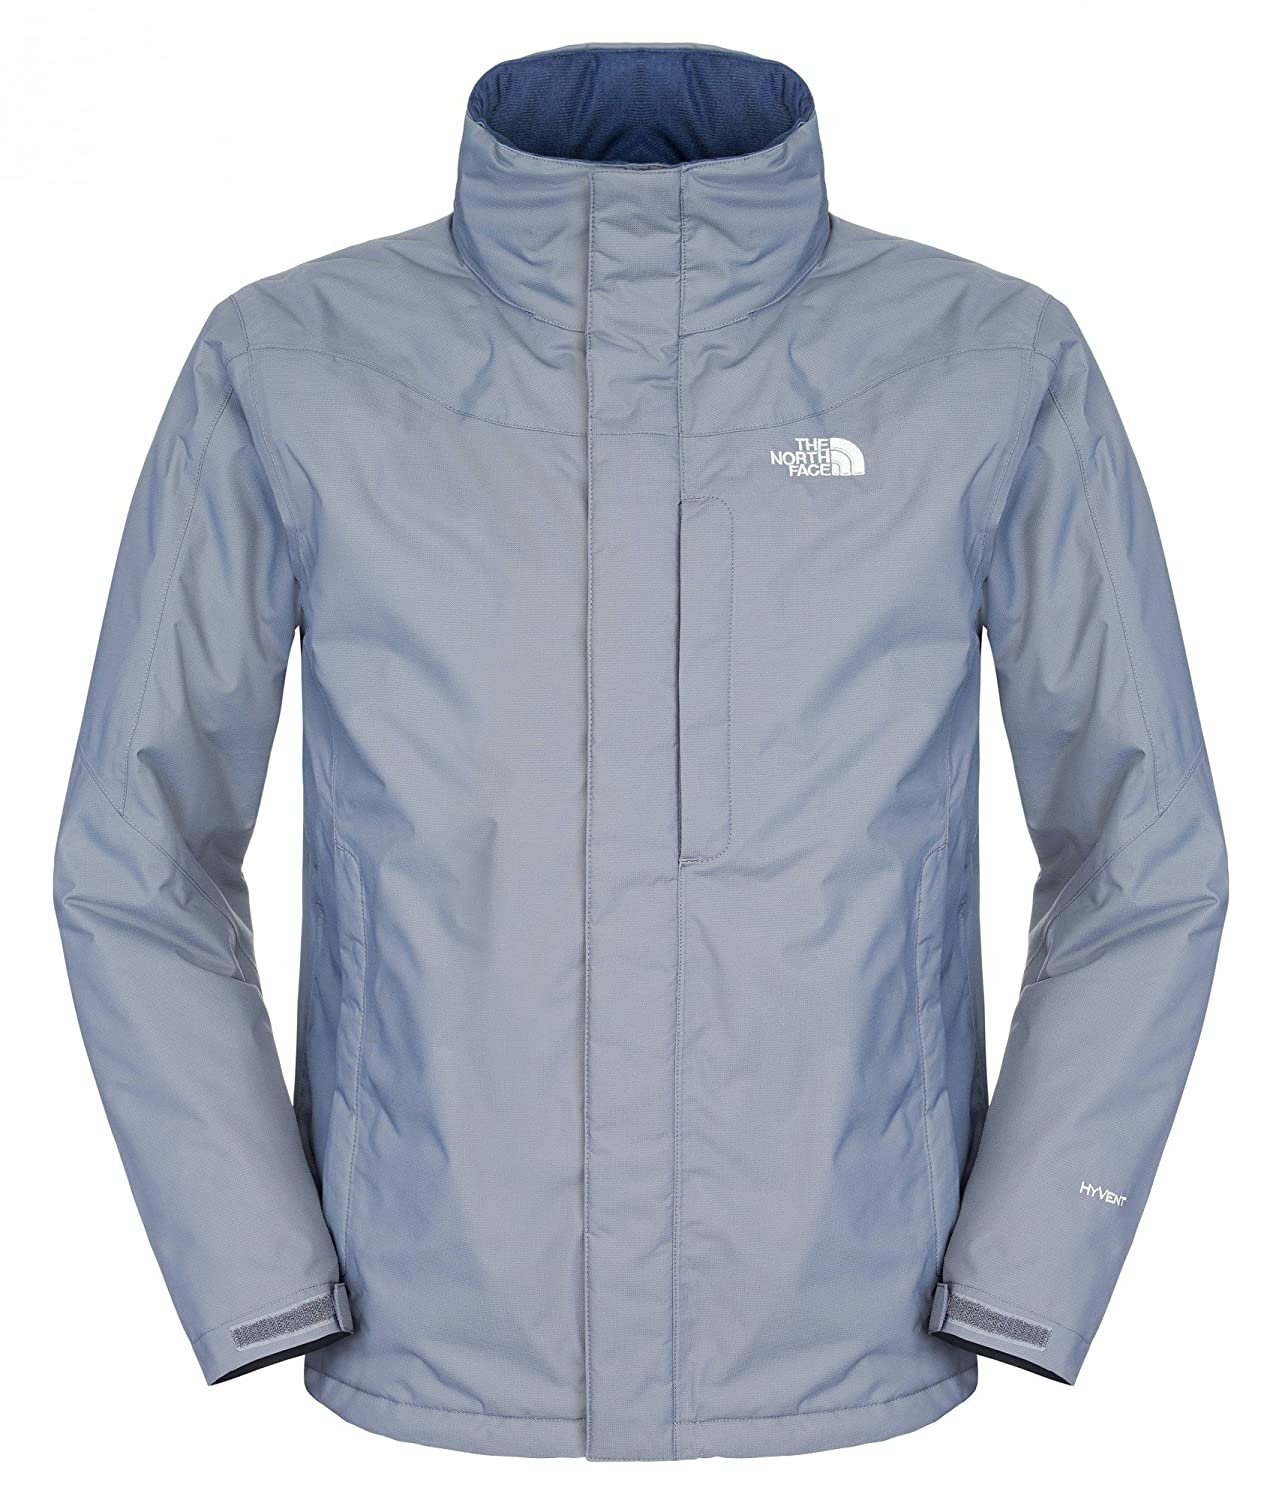 The North Face Highland Jacket Vanadis Grey A6FG174 günstig